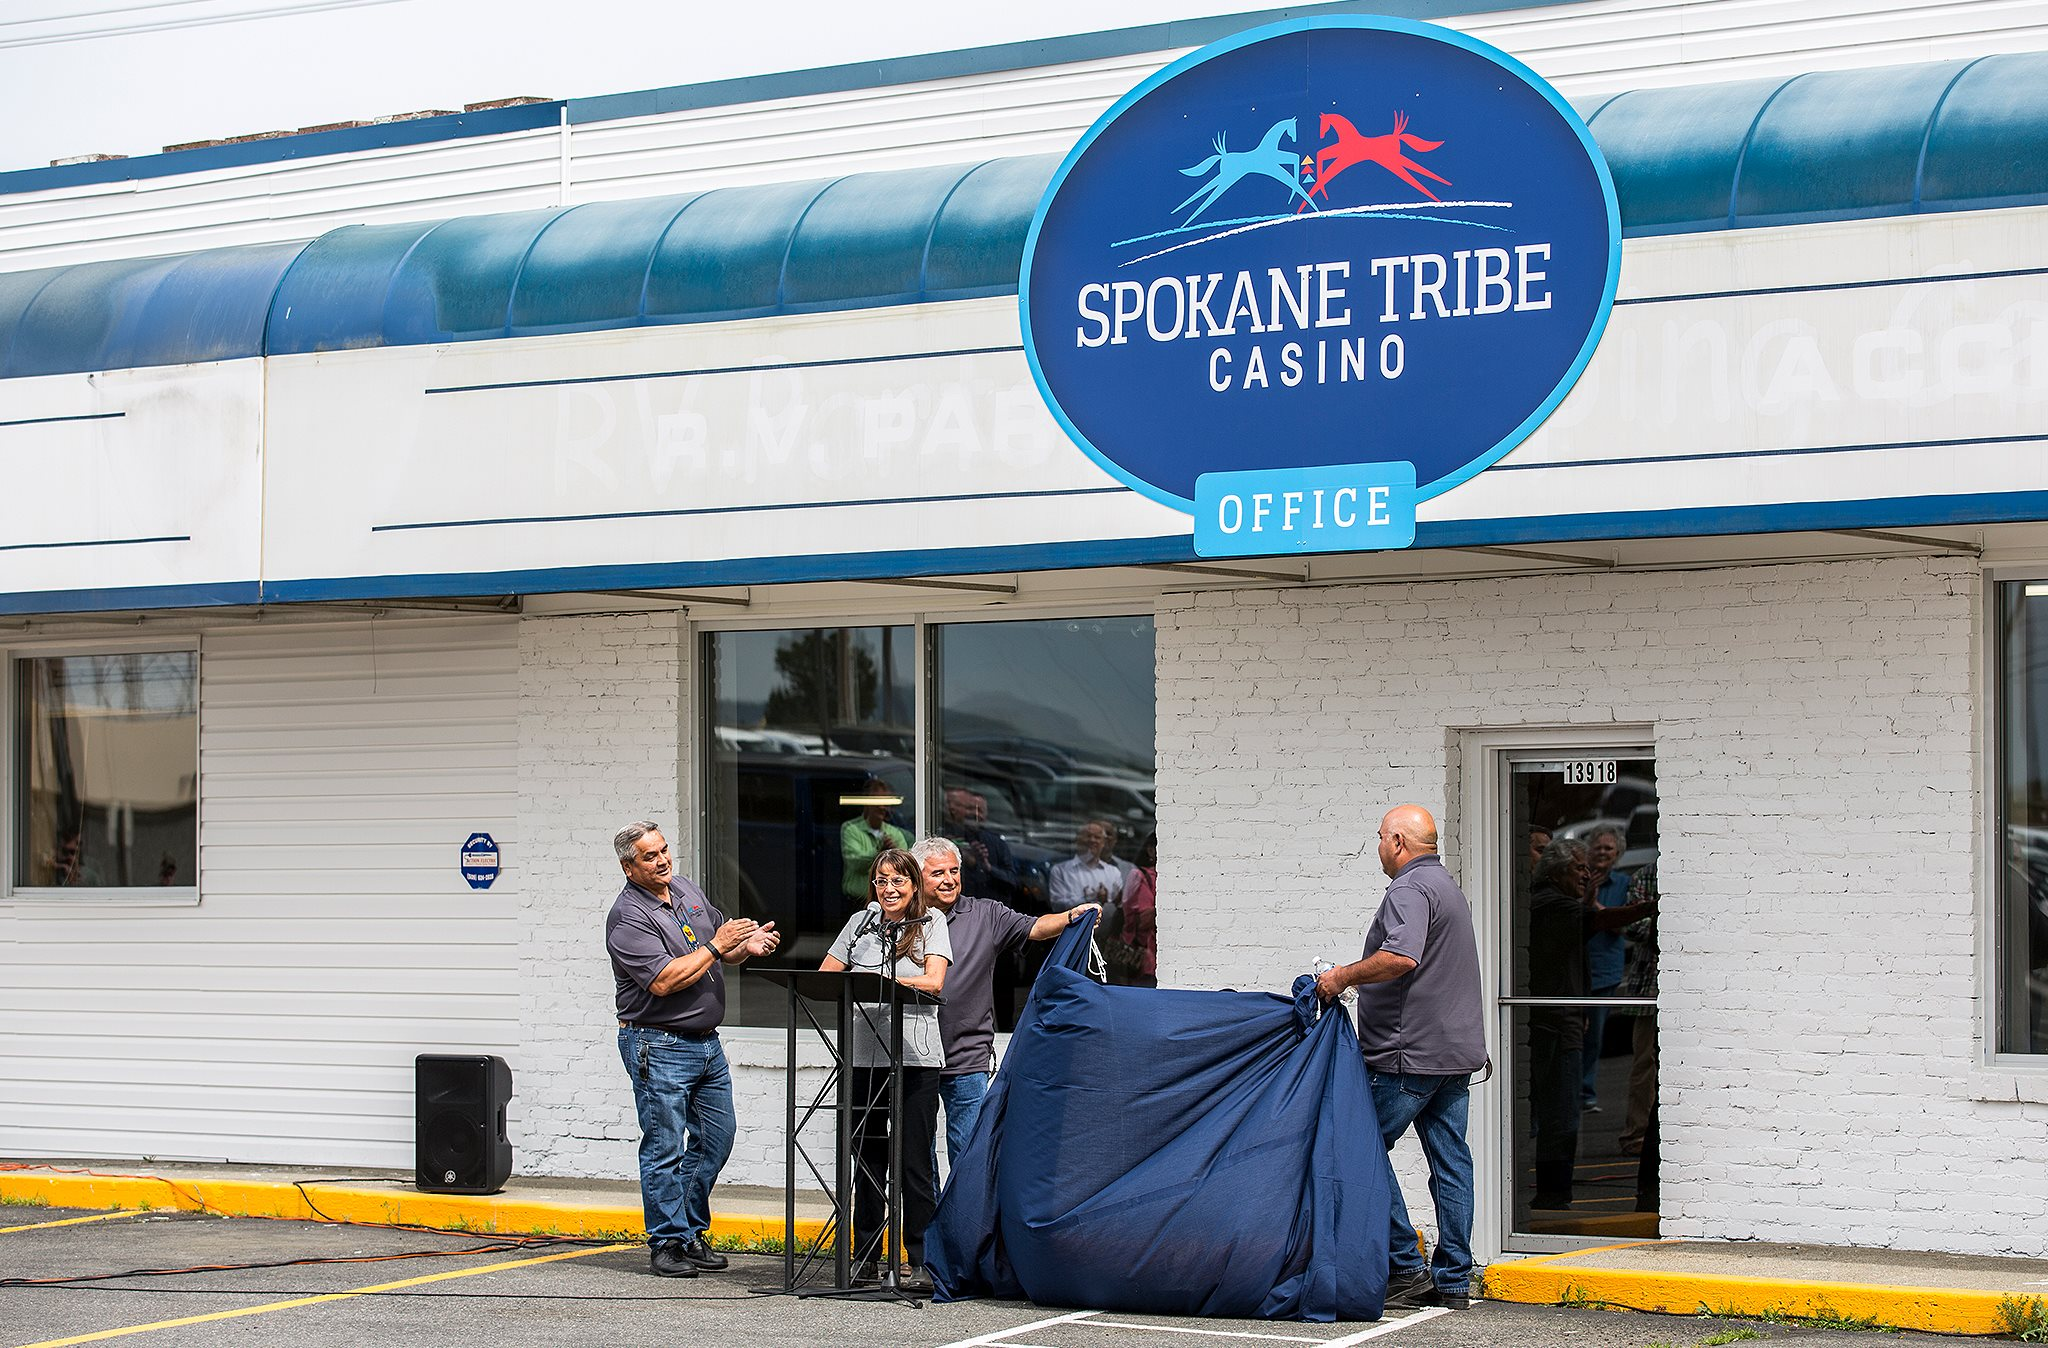 Spokane Tribe casino doesn't bother Air Force despite claims in lawsuit